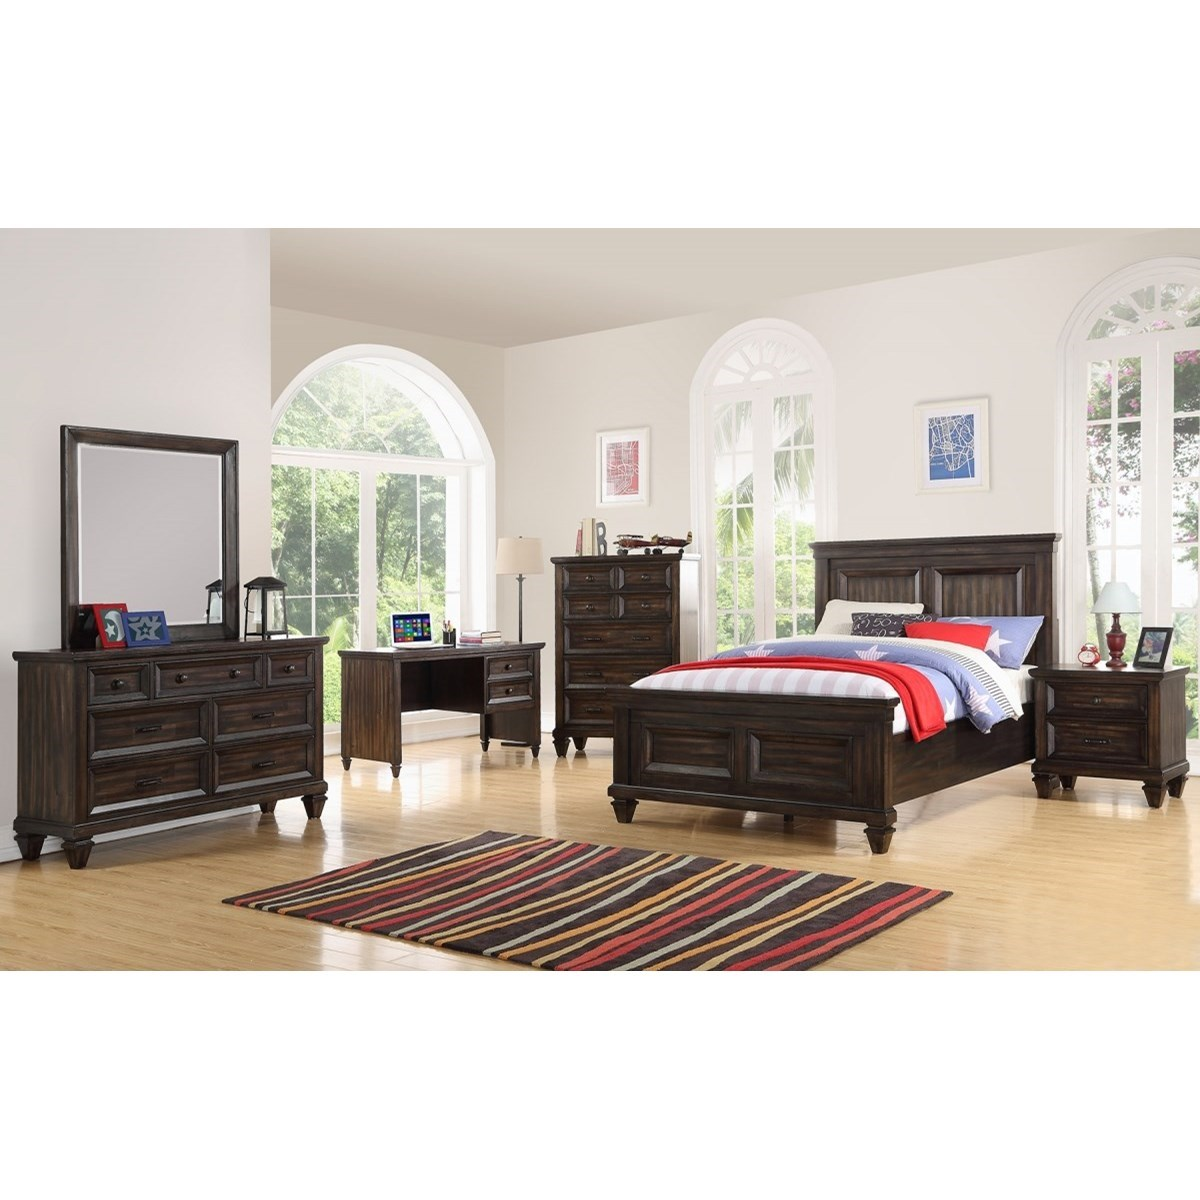 Sevilla Full Bedroom Group by New Classic at Beck's Furniture